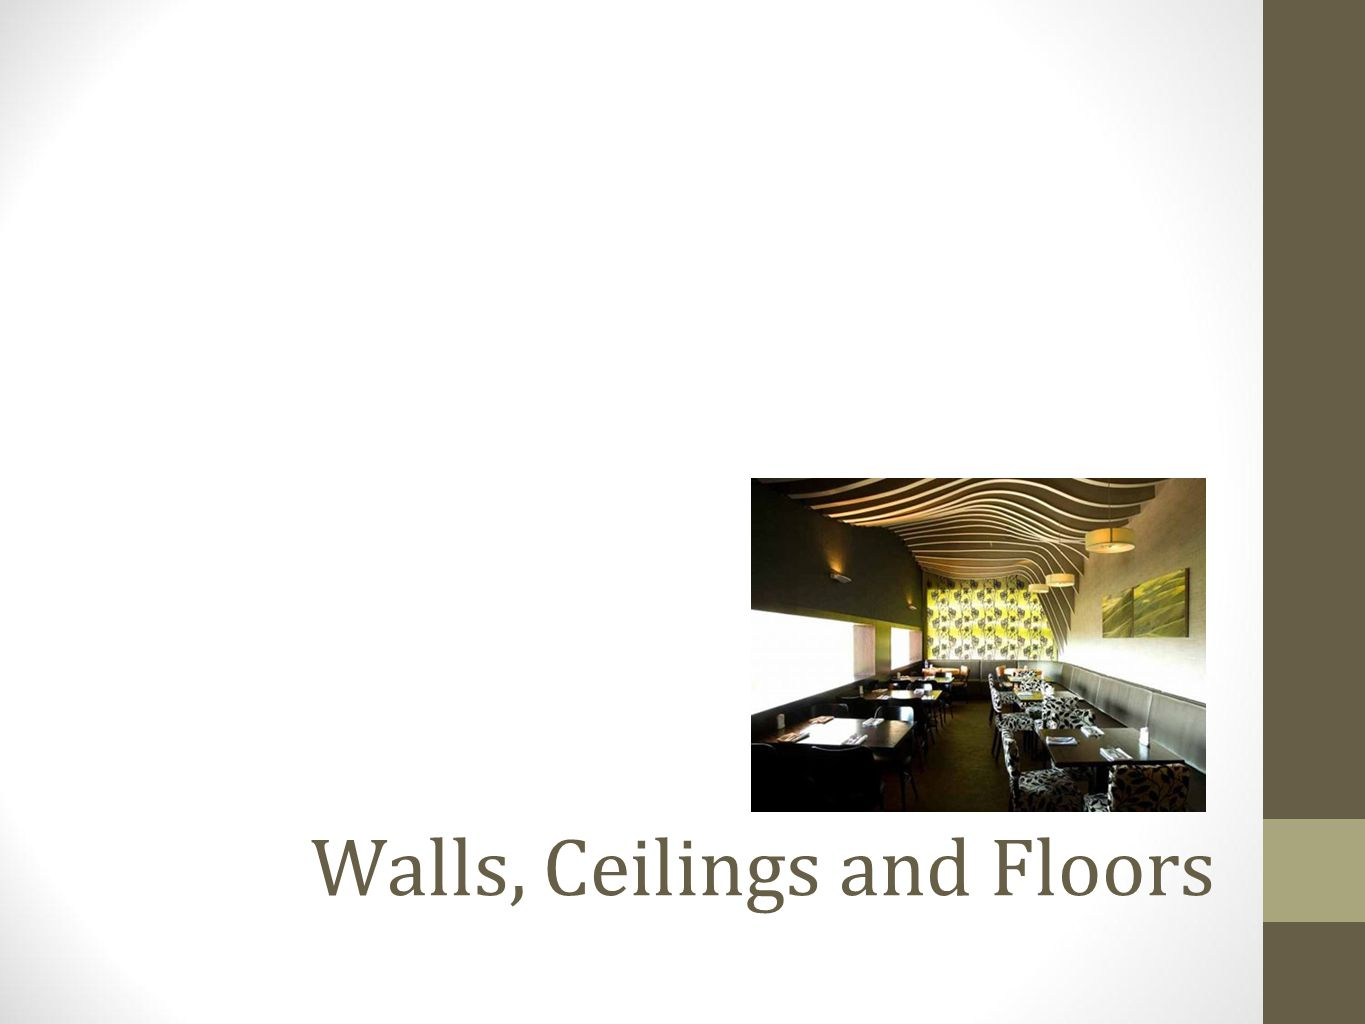 Walls, Ceilings and Floors